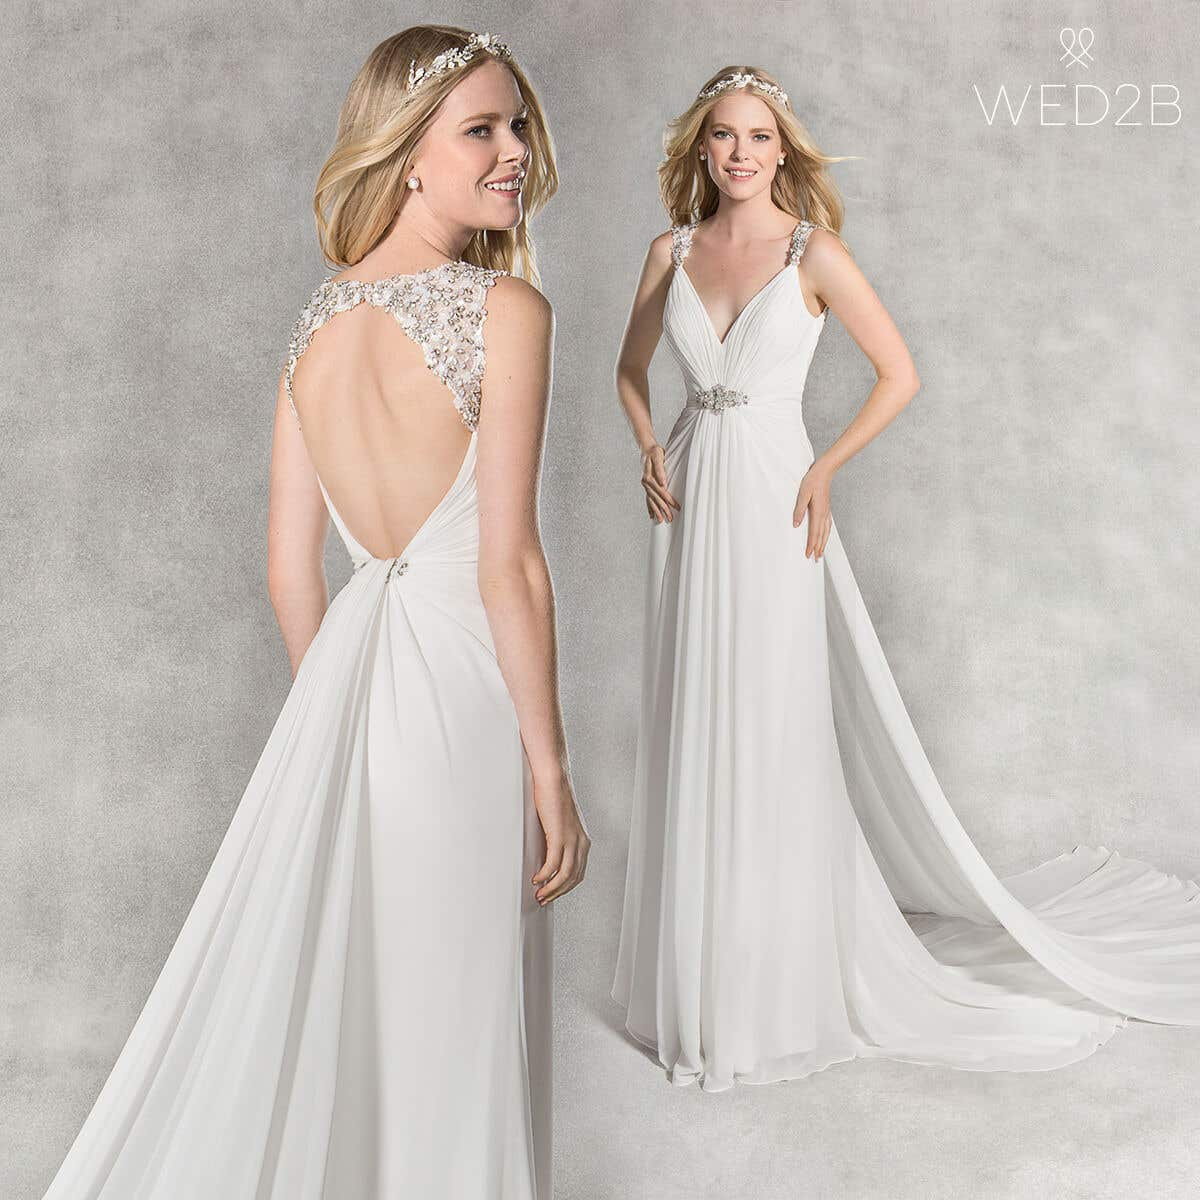 A wedding dress style guide for tall brides   WED18B UK BLOG